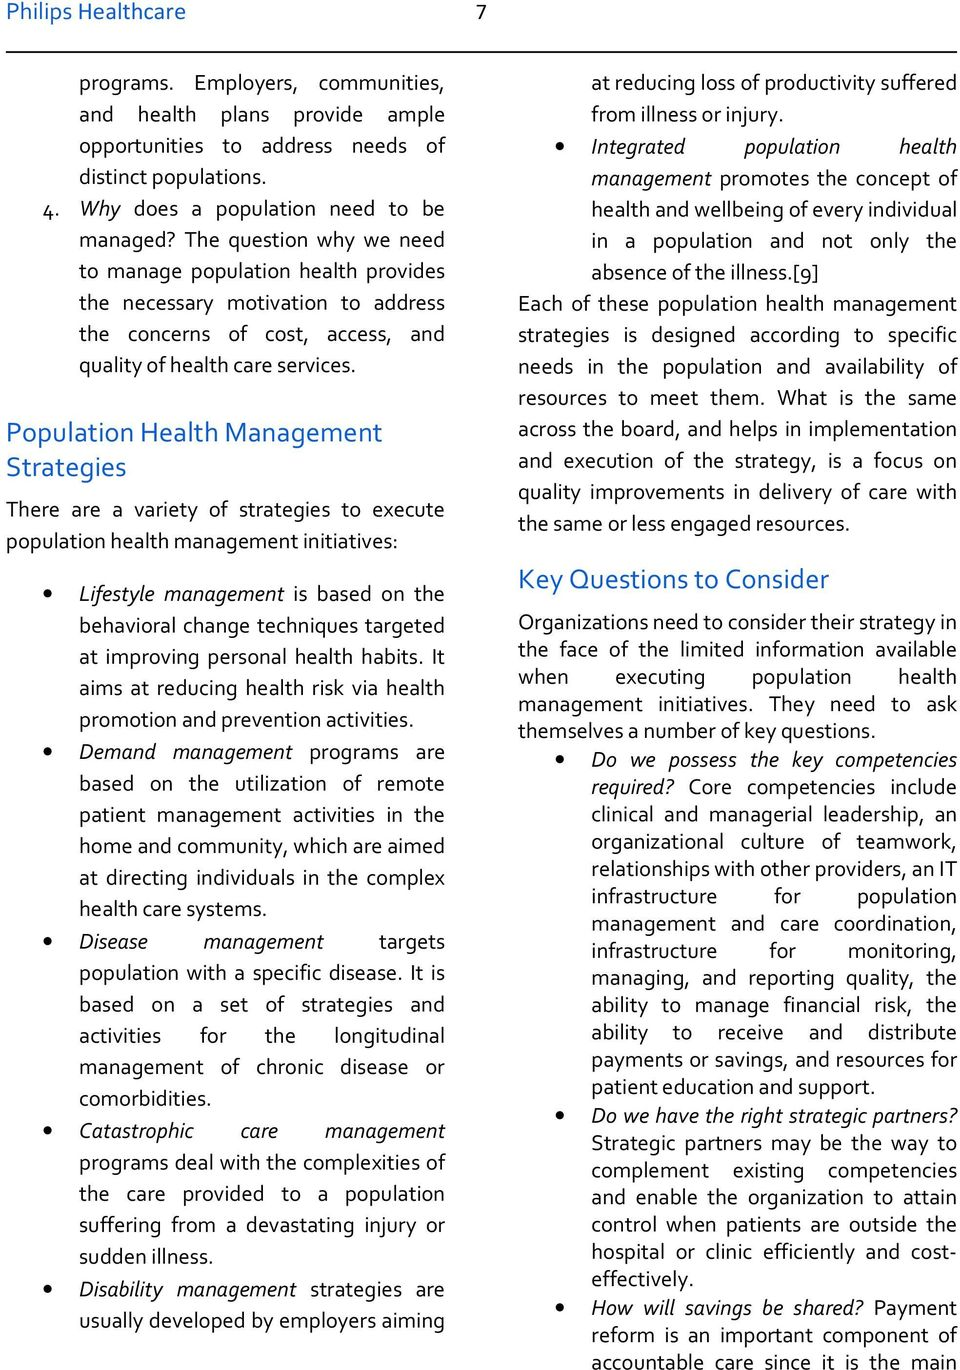 Population Health Management Strategies There are a variety of strategies to execute population health management initiatives: Lifestyle management is based on the behavioral change techniques